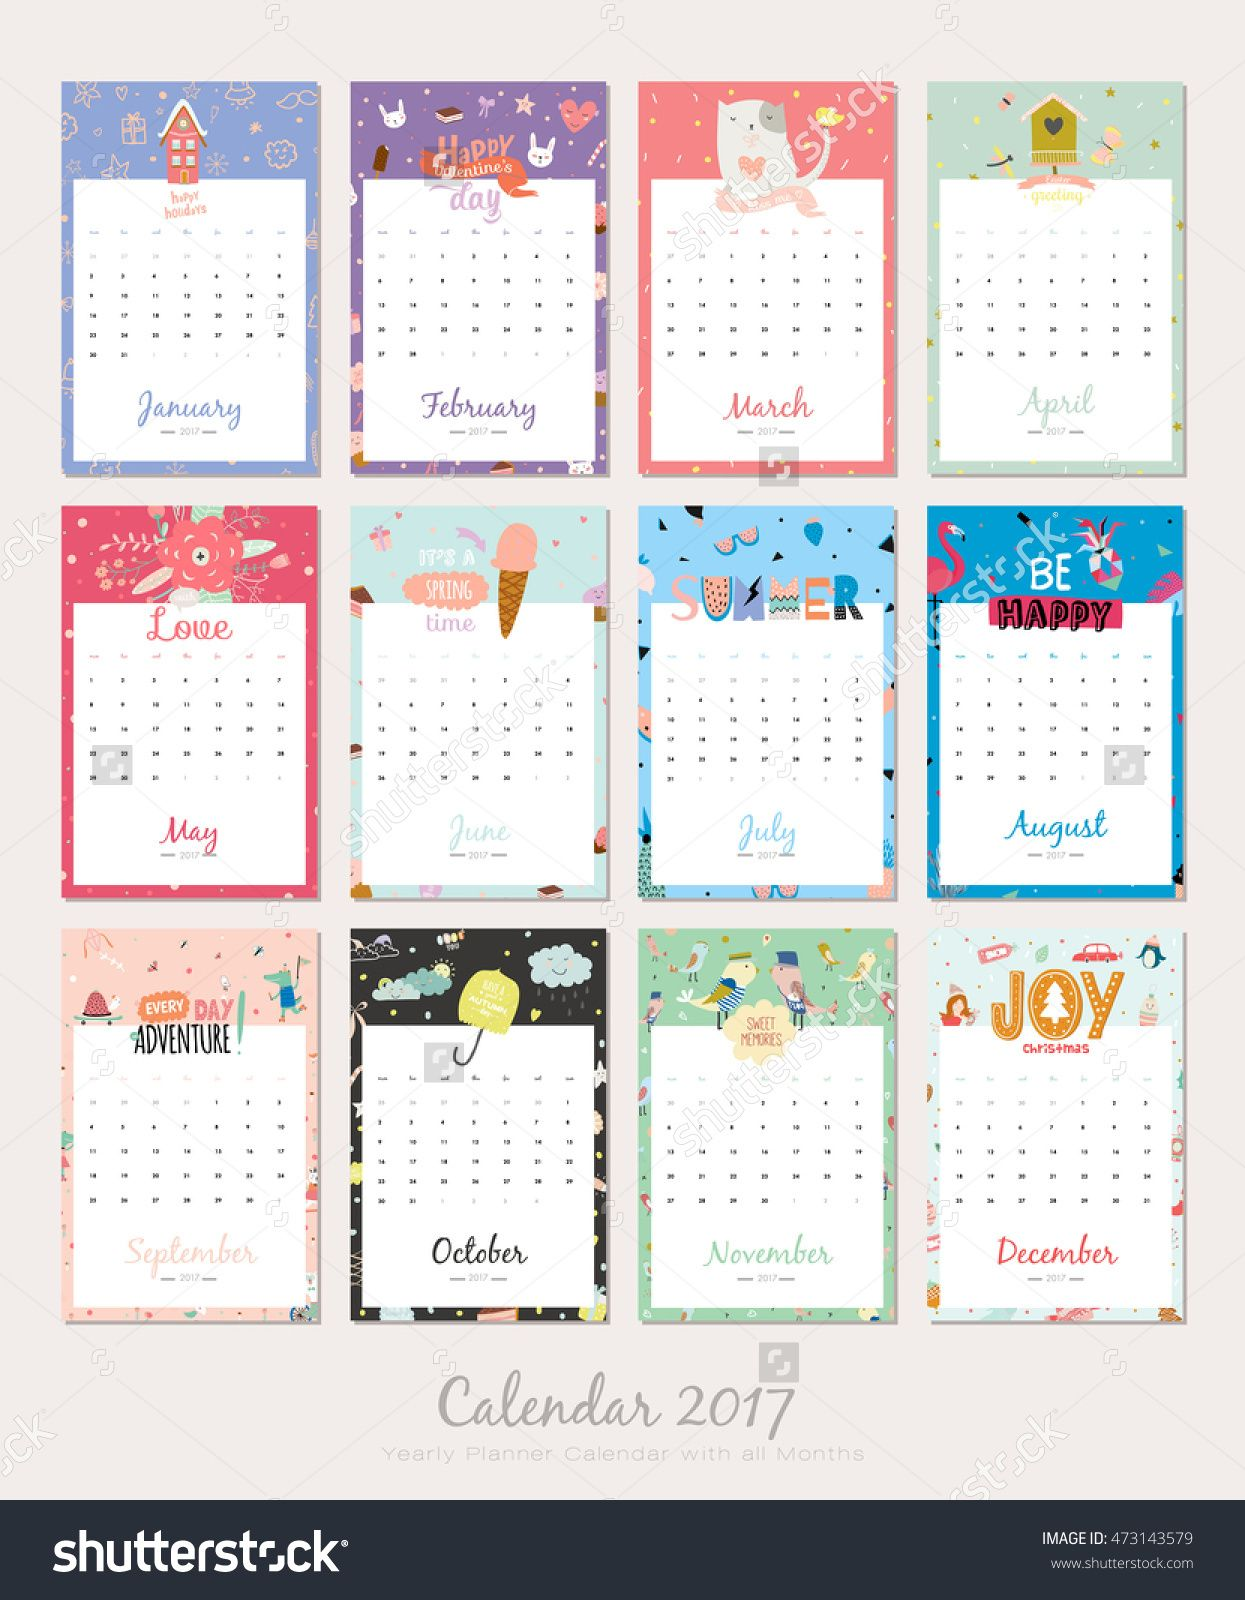 Cute Calendar Template For 2017 Yearly Planner Calendar With All